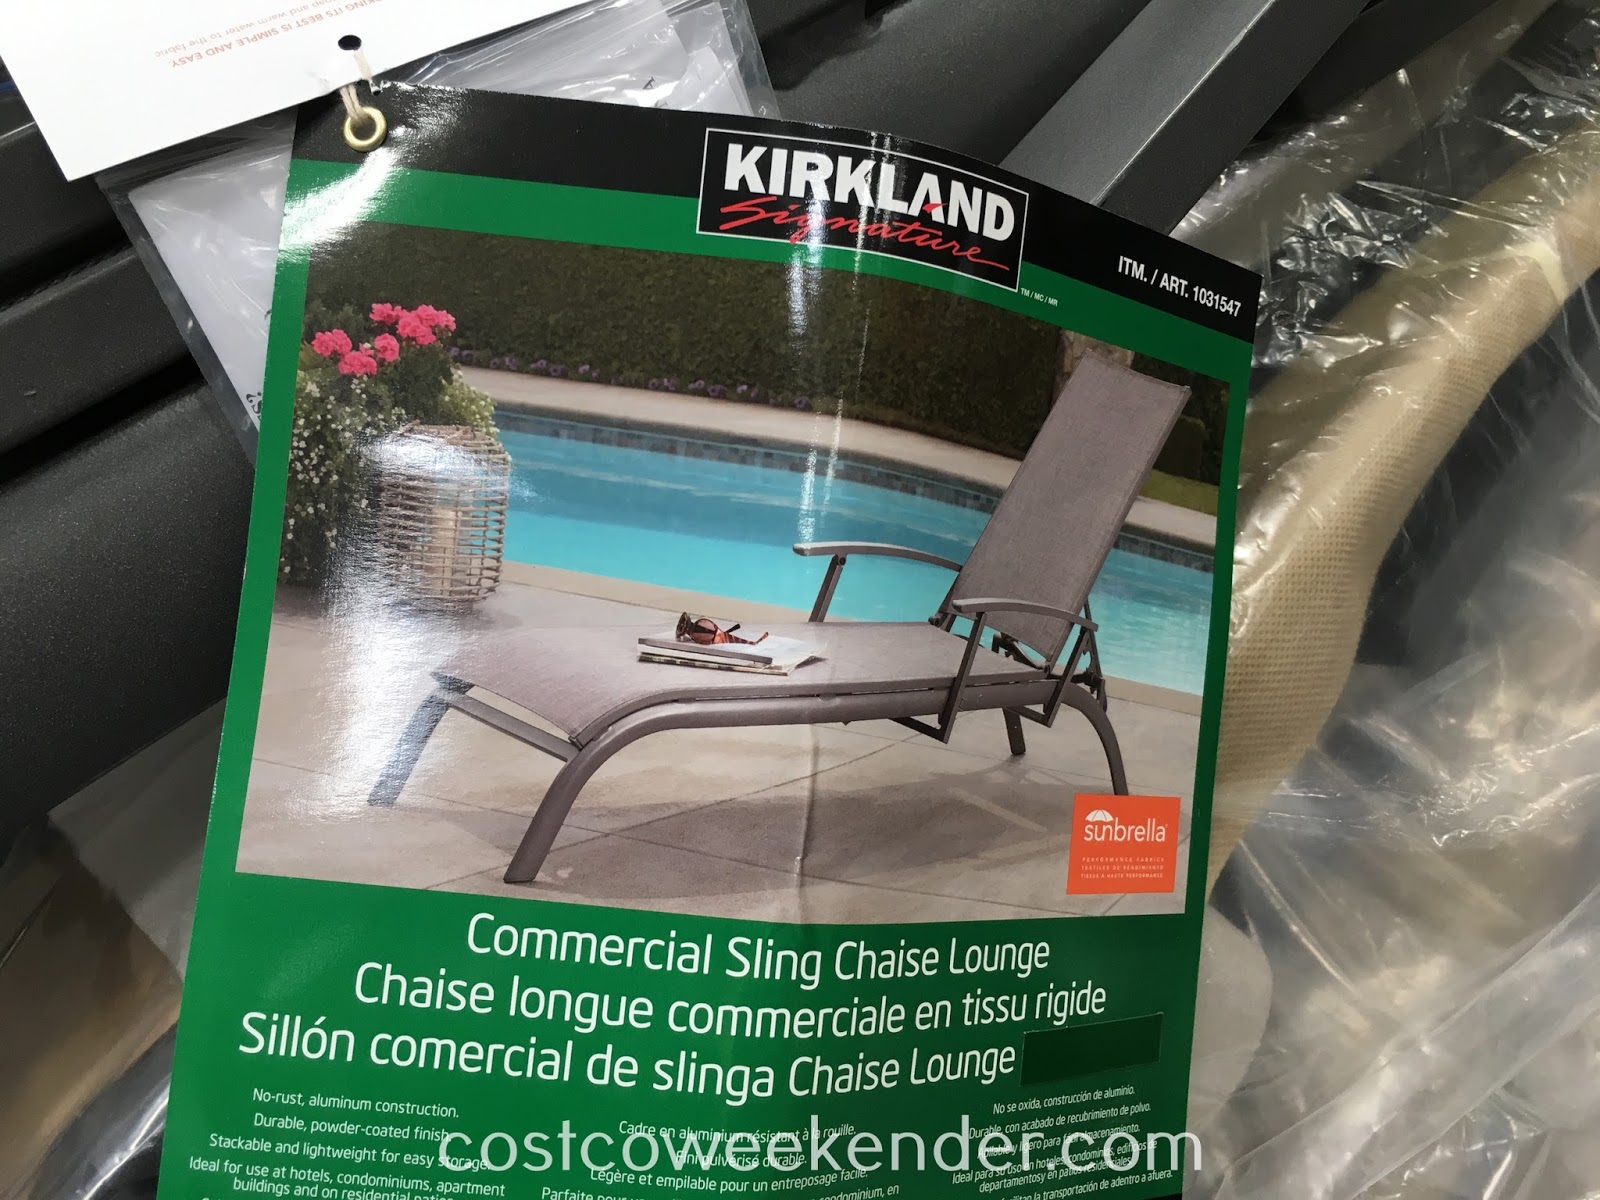 Relax in your backyard, patio, or by the pool on the Kirkland Signature Commercial Sling Chaise Lounge